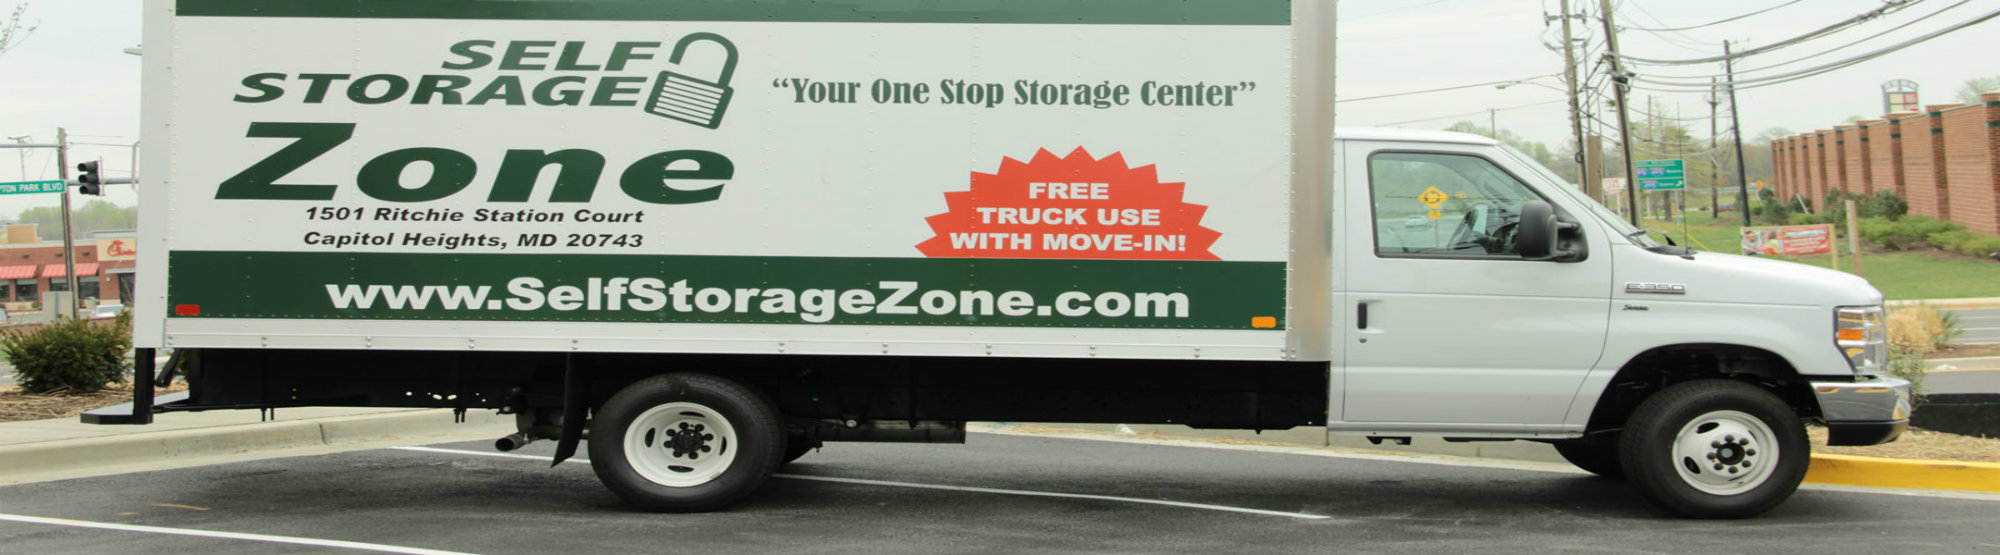 Great Storage In The DC Metro!